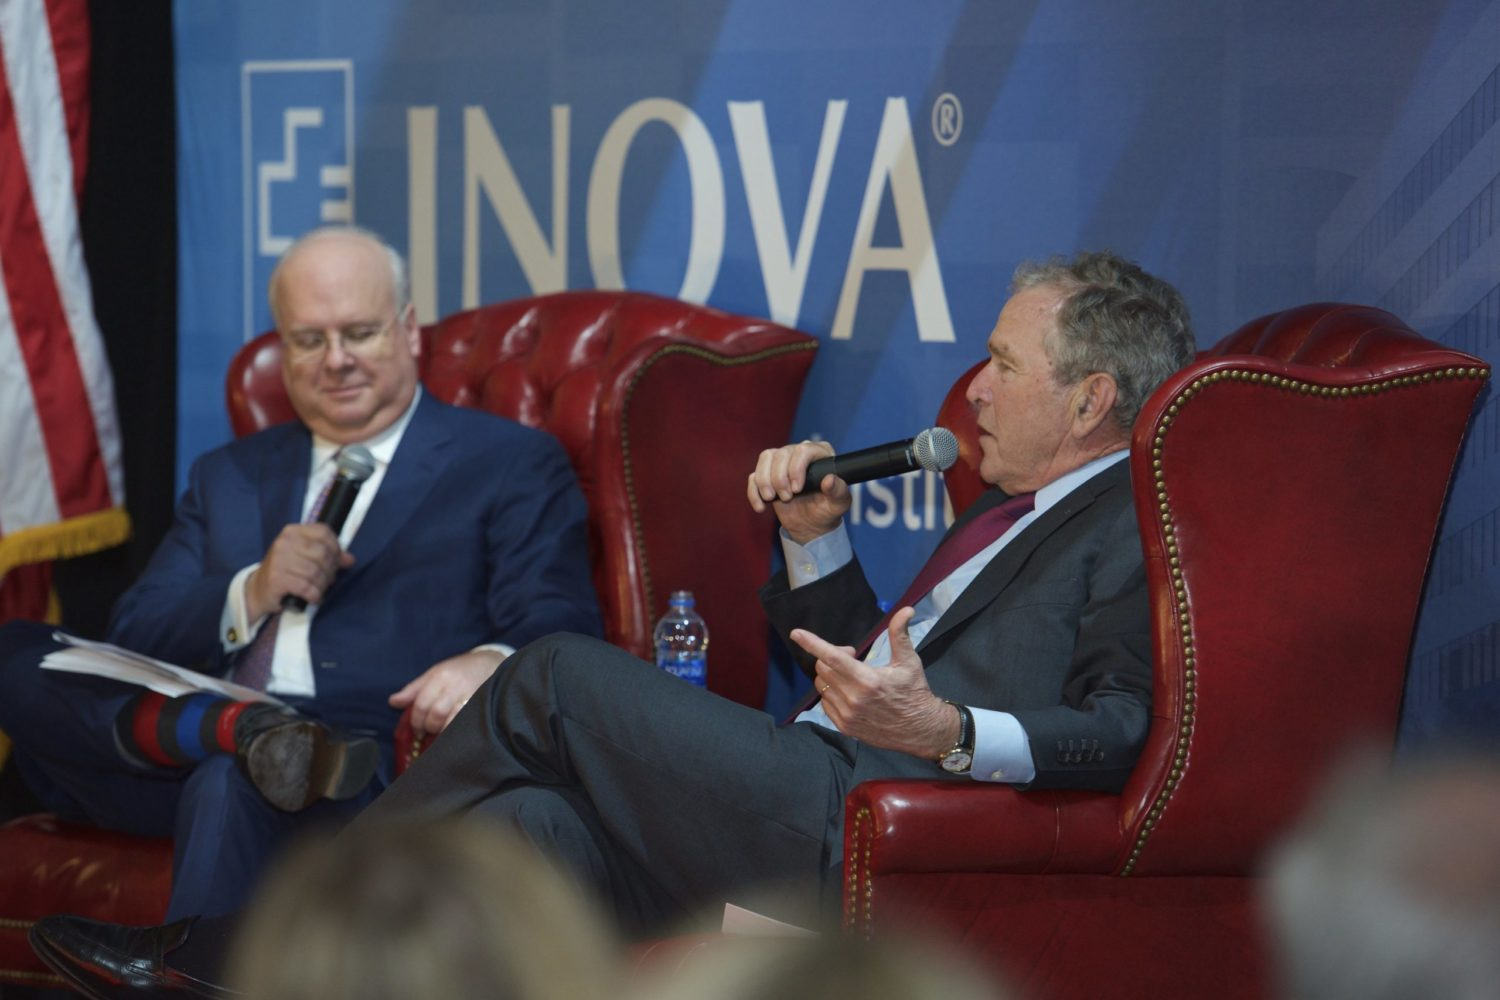 President George W. Bush, who has spotlighted cancer research after his presidency, was interviewed by his former advisor Karl Rove.